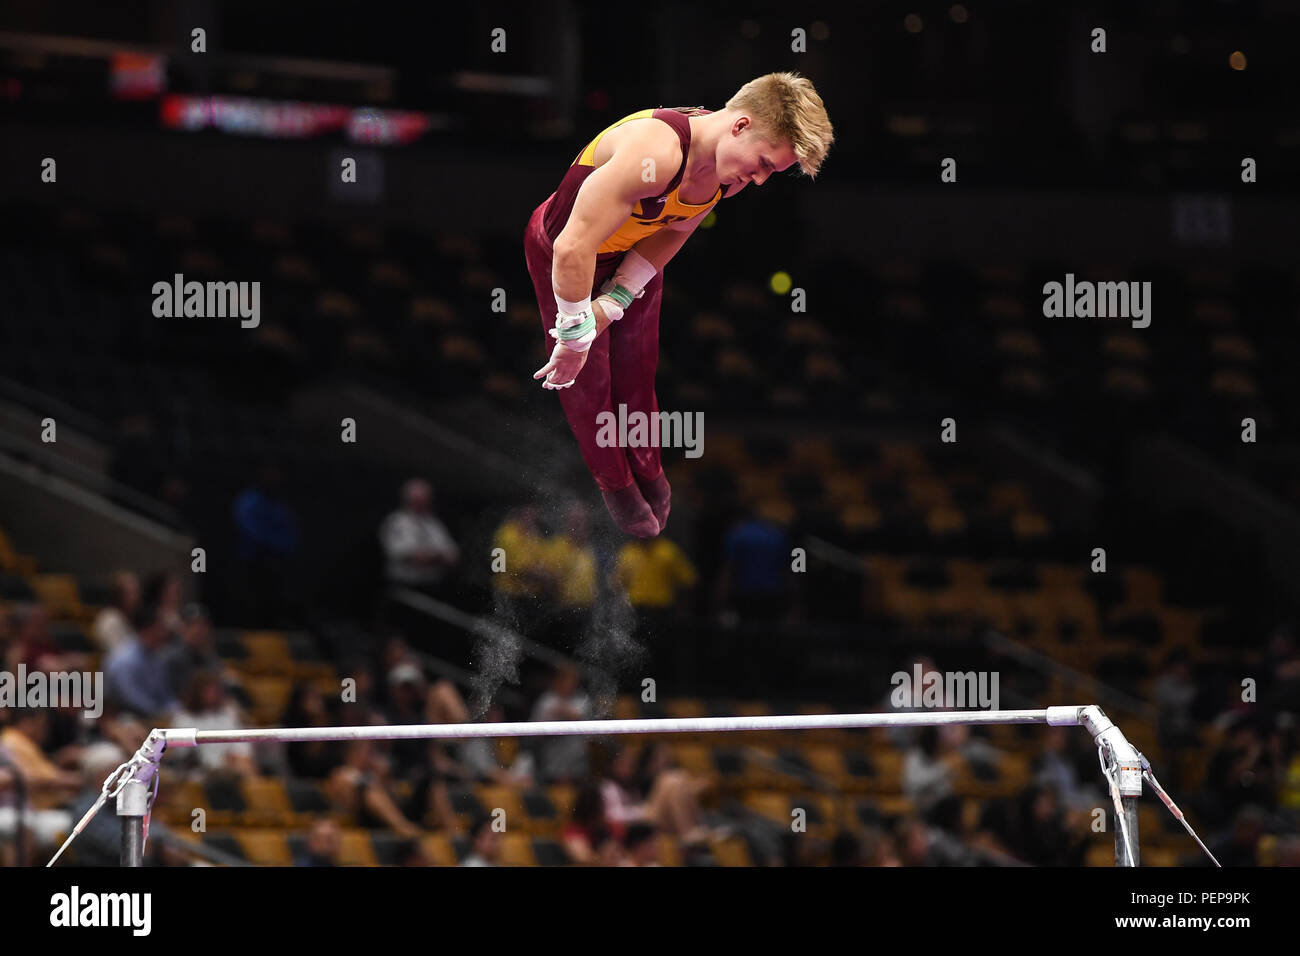 Boston, Massachussetts, USA. 16th Aug, 2018. SHANE WISKUS from the University of Minnesota competes on the high bar during the first night of competition at TD Garden in Boston, Massachusetts. Credit: Amy Sanderson/ZUMA Wire/Alamy Live News - Stock Image